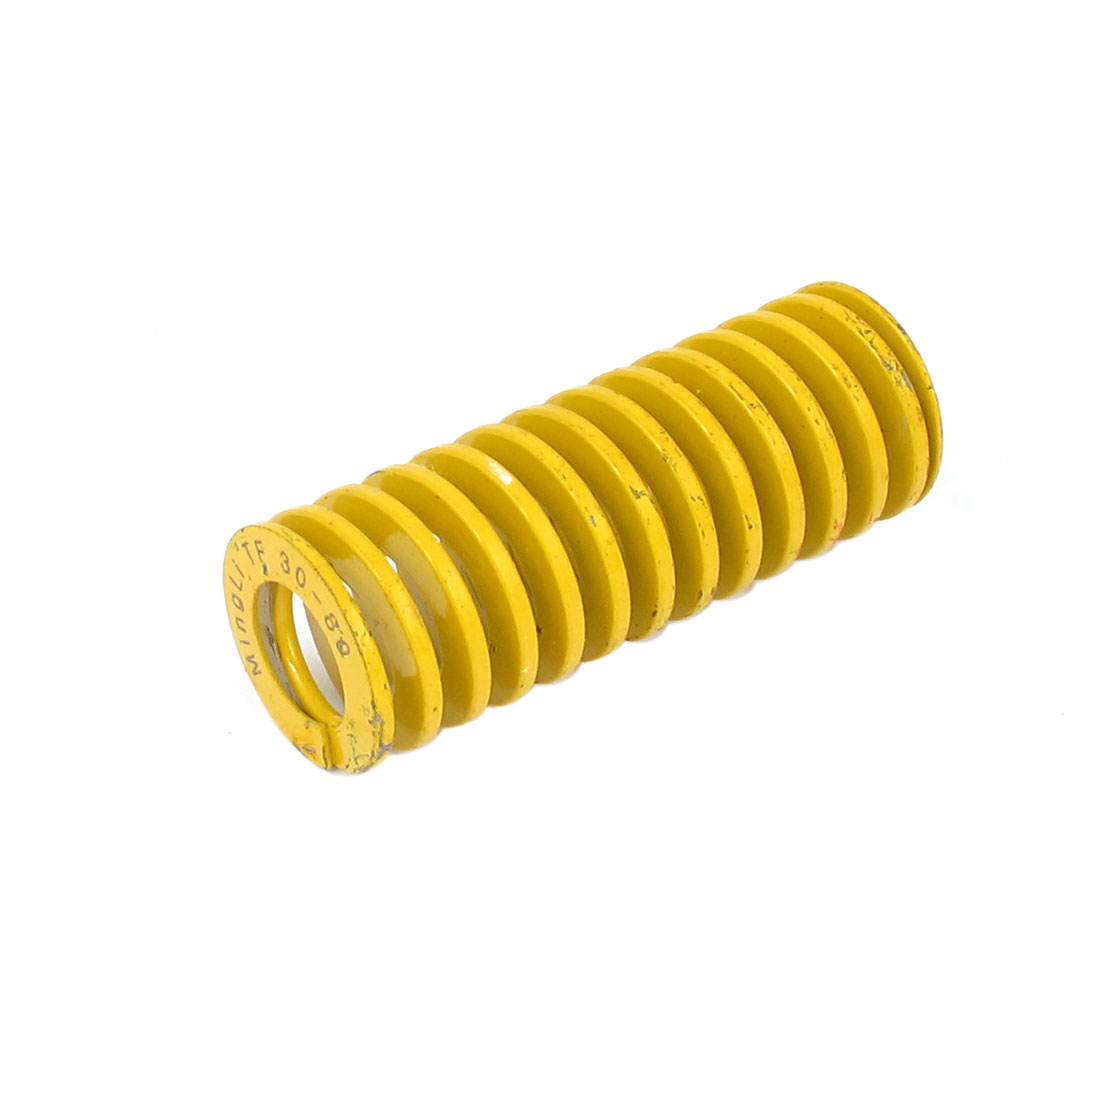 30mm OD 80mm Long Lightest Load Spiral Stamping Compression Die Spring Yellow